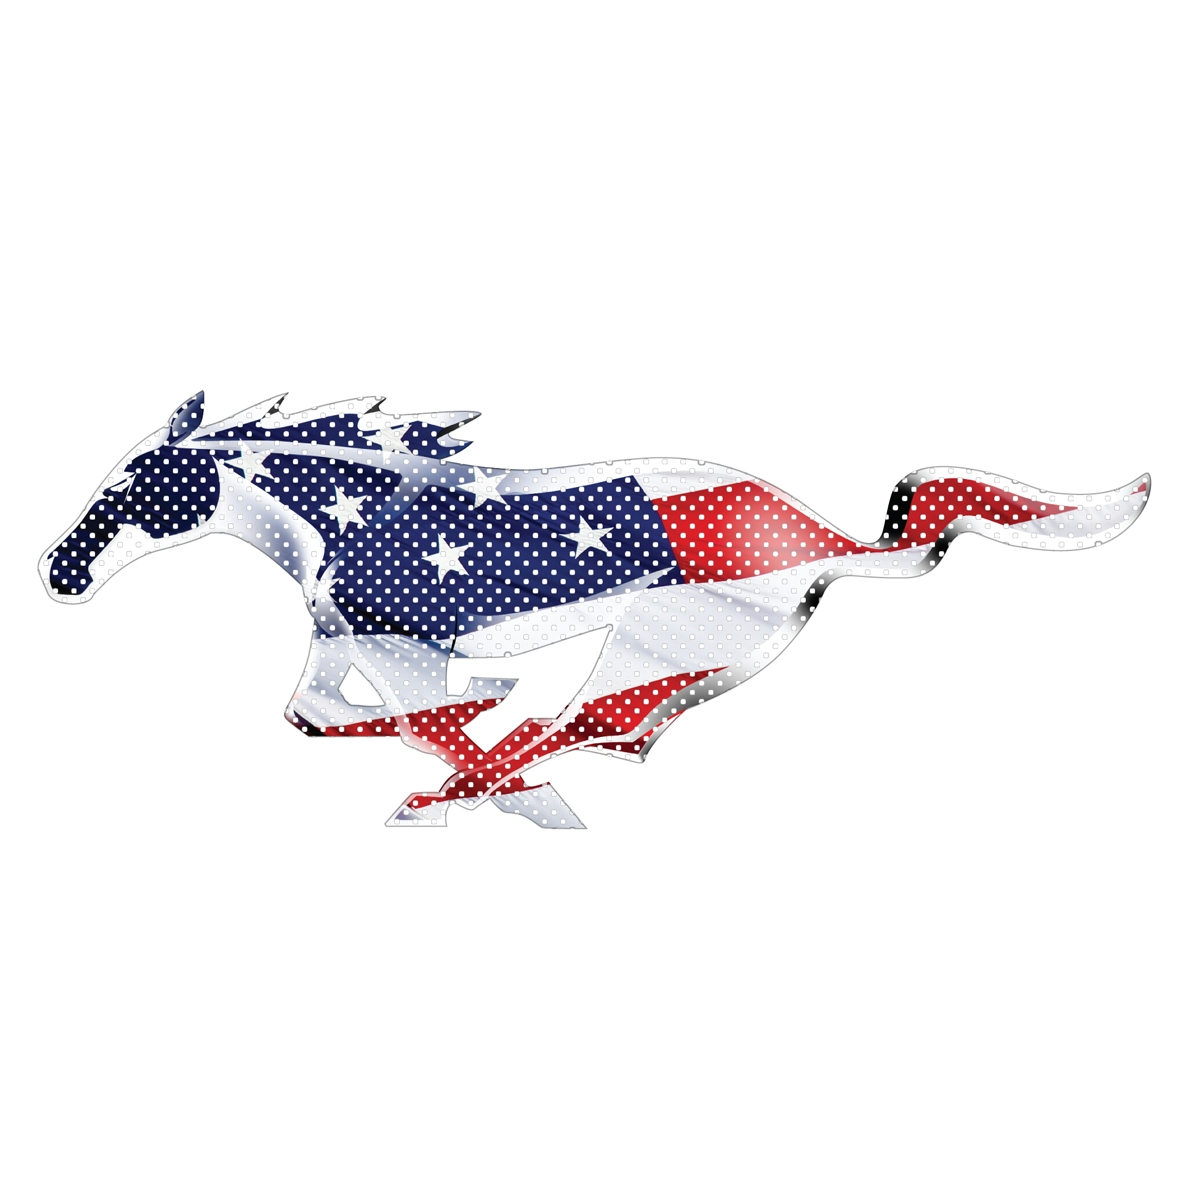 Ford mustang pony in usa flag 12 3m perforated unobstructed view window graphic decorative decal